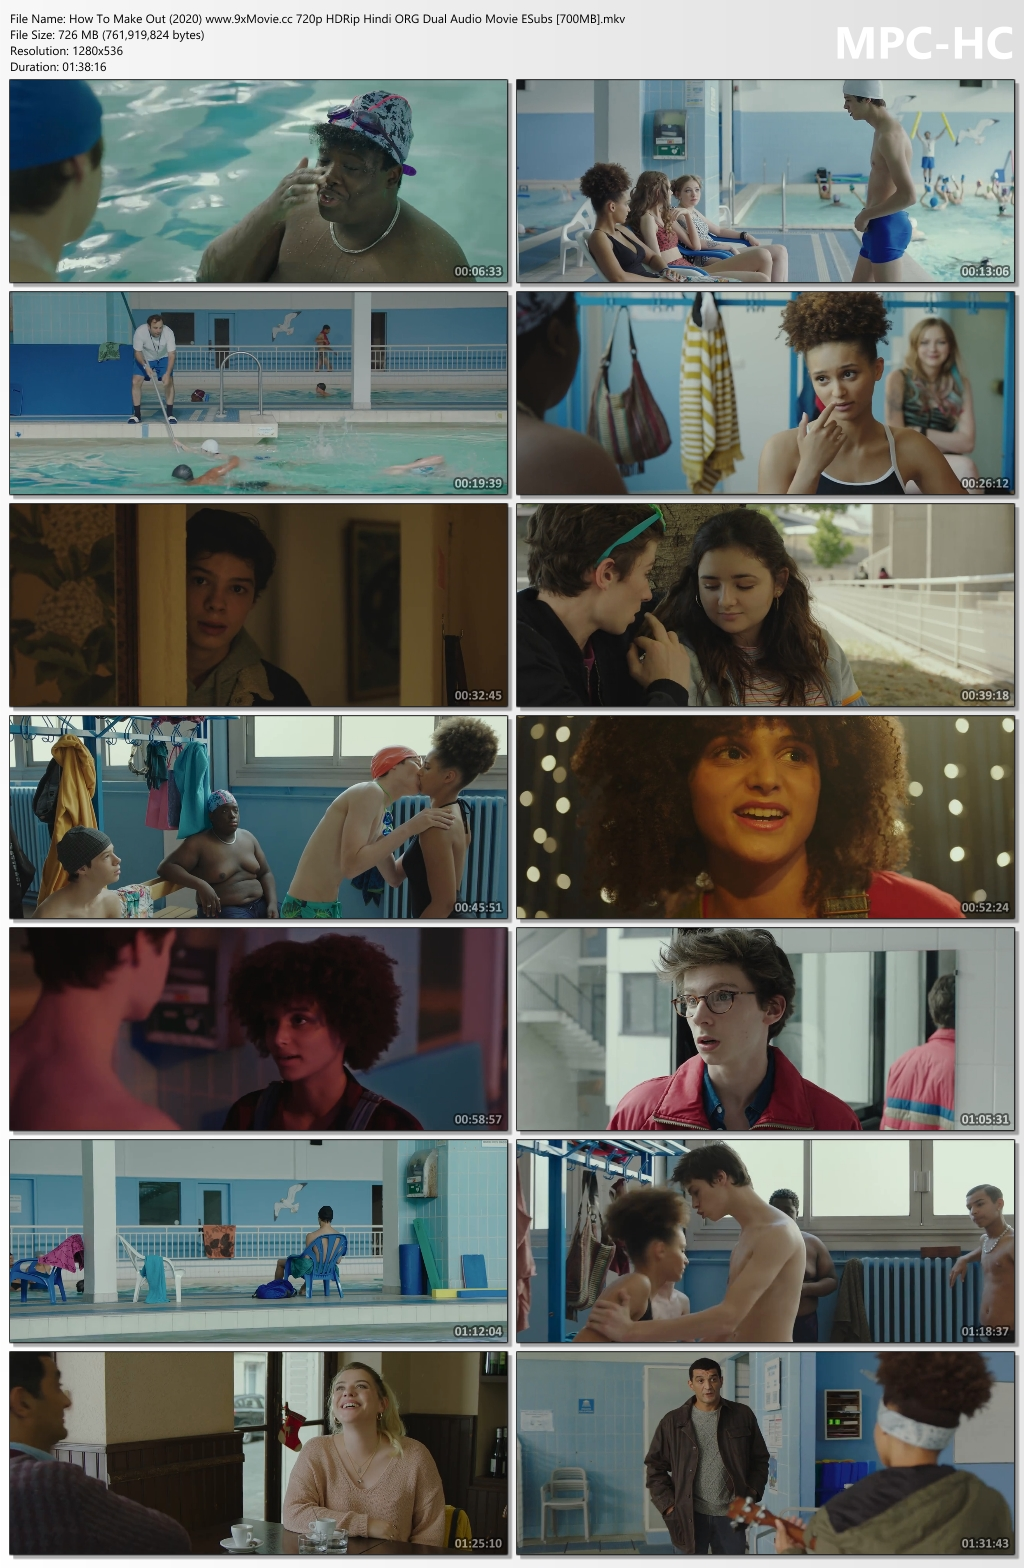 How-To-Make-Out-2020-www-9x-Movie-cc-720p-HDRip-Hindi-ORG-Dual-Audio-Movie-ESubs-700-MB-mkv